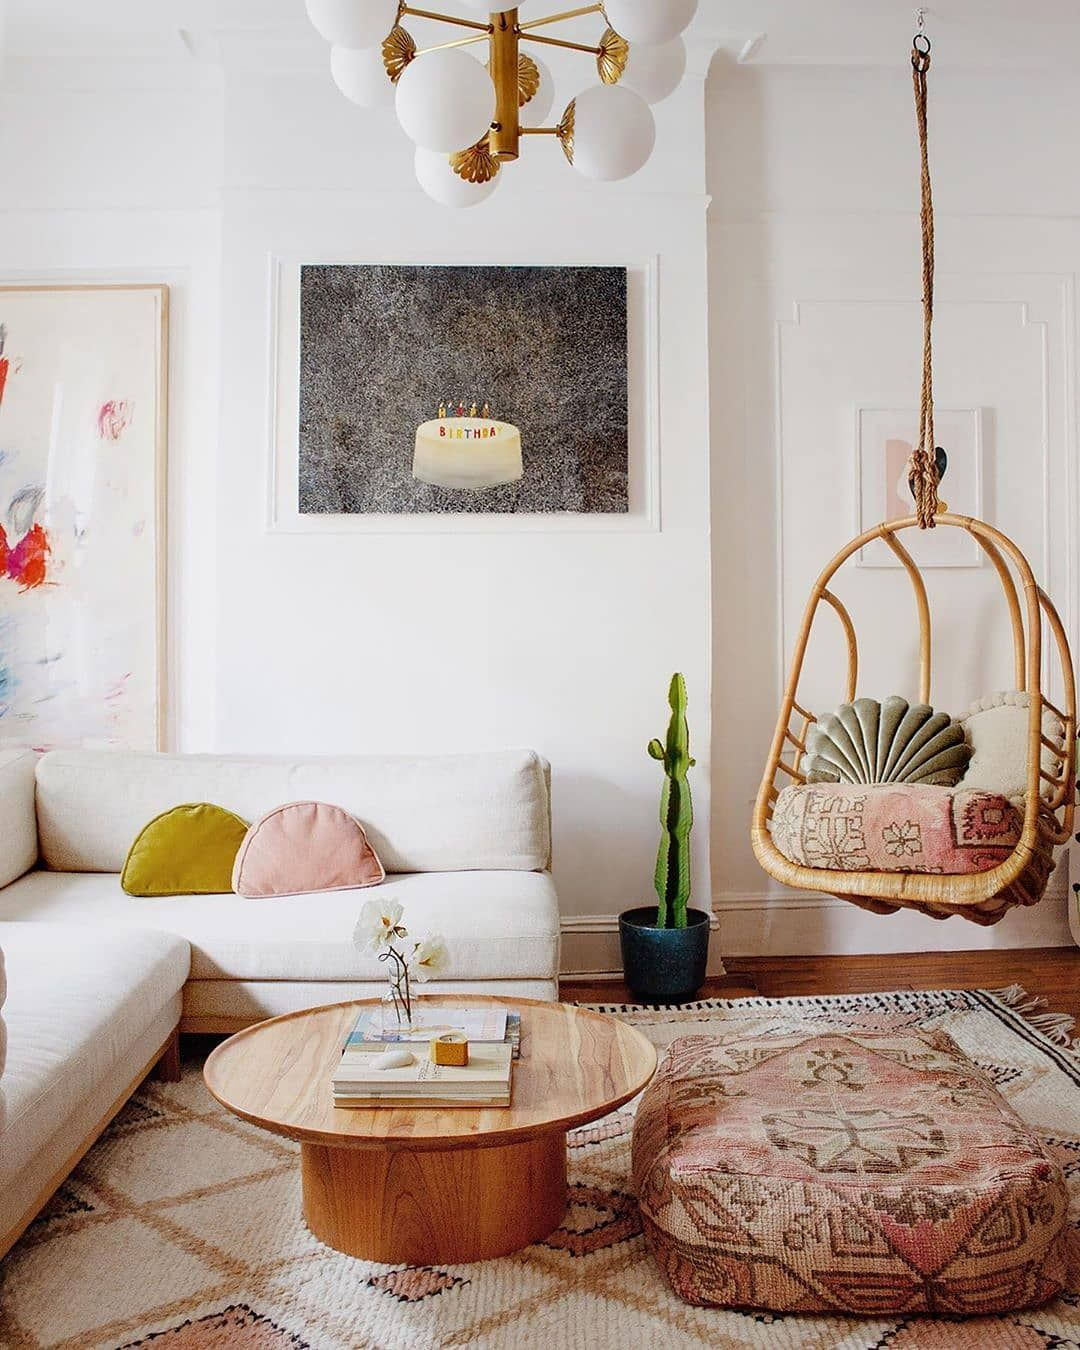 Sian Zeng Wallpapers On Instagram Swinging Into The Weekend Like Adore This Interior From Reserv Whimsical Living Room Living Room Designs Home Decor Whimsical living room decor